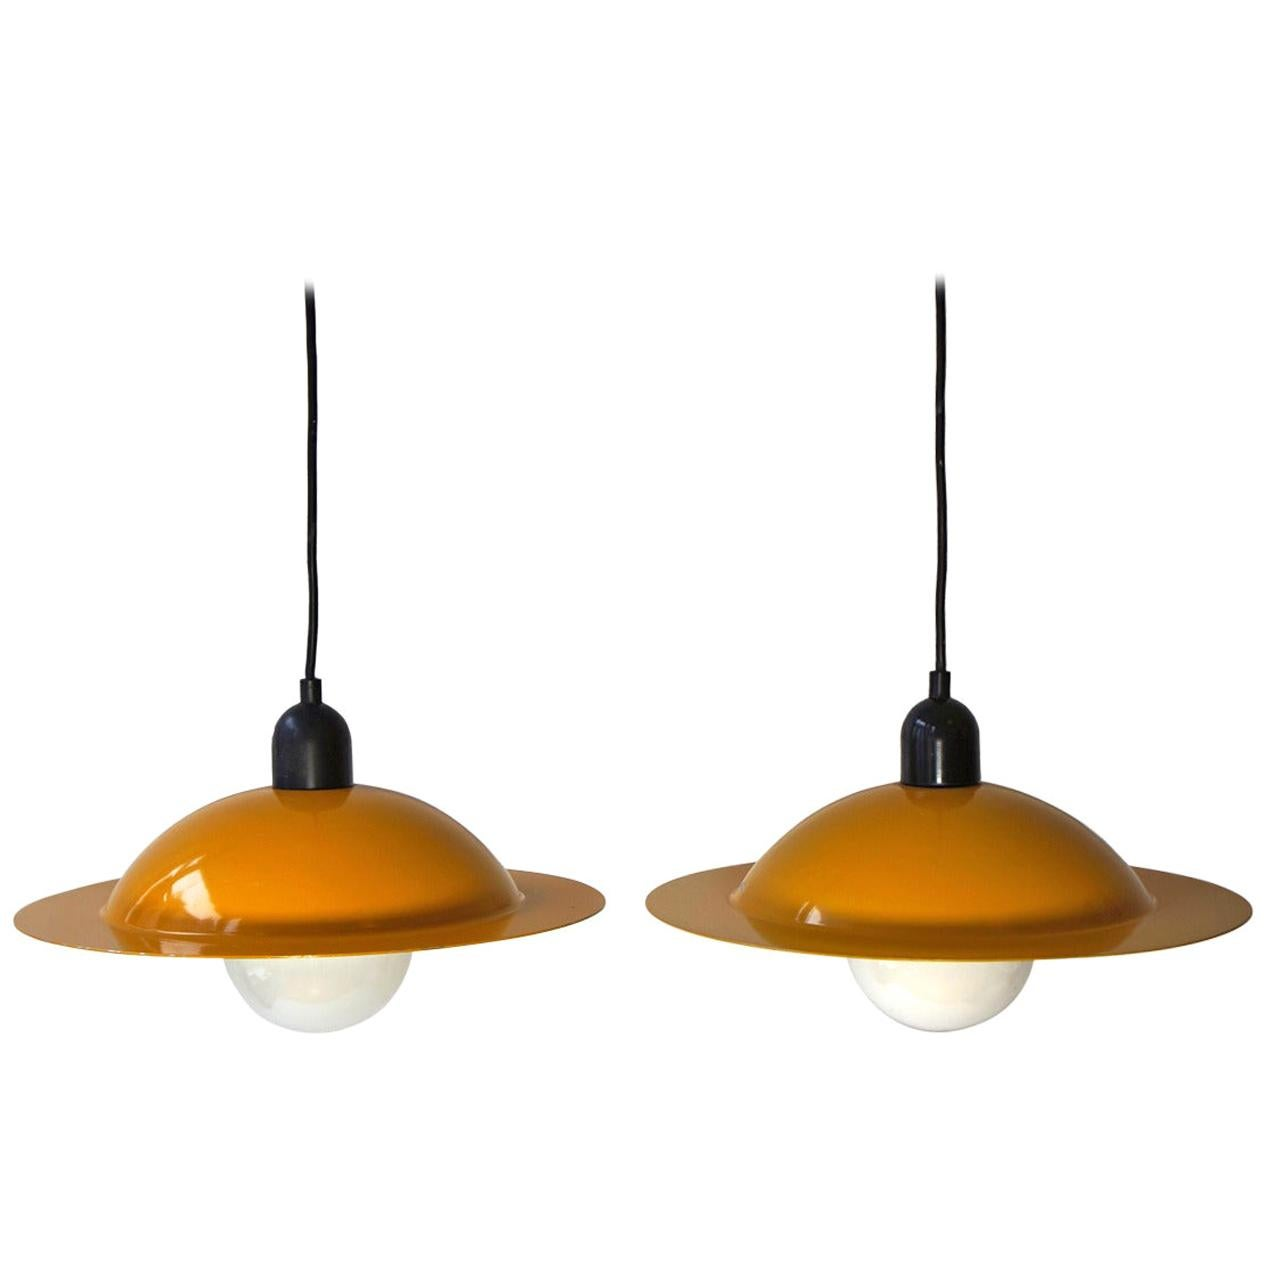 Two Stilnovo Pendant Lamps